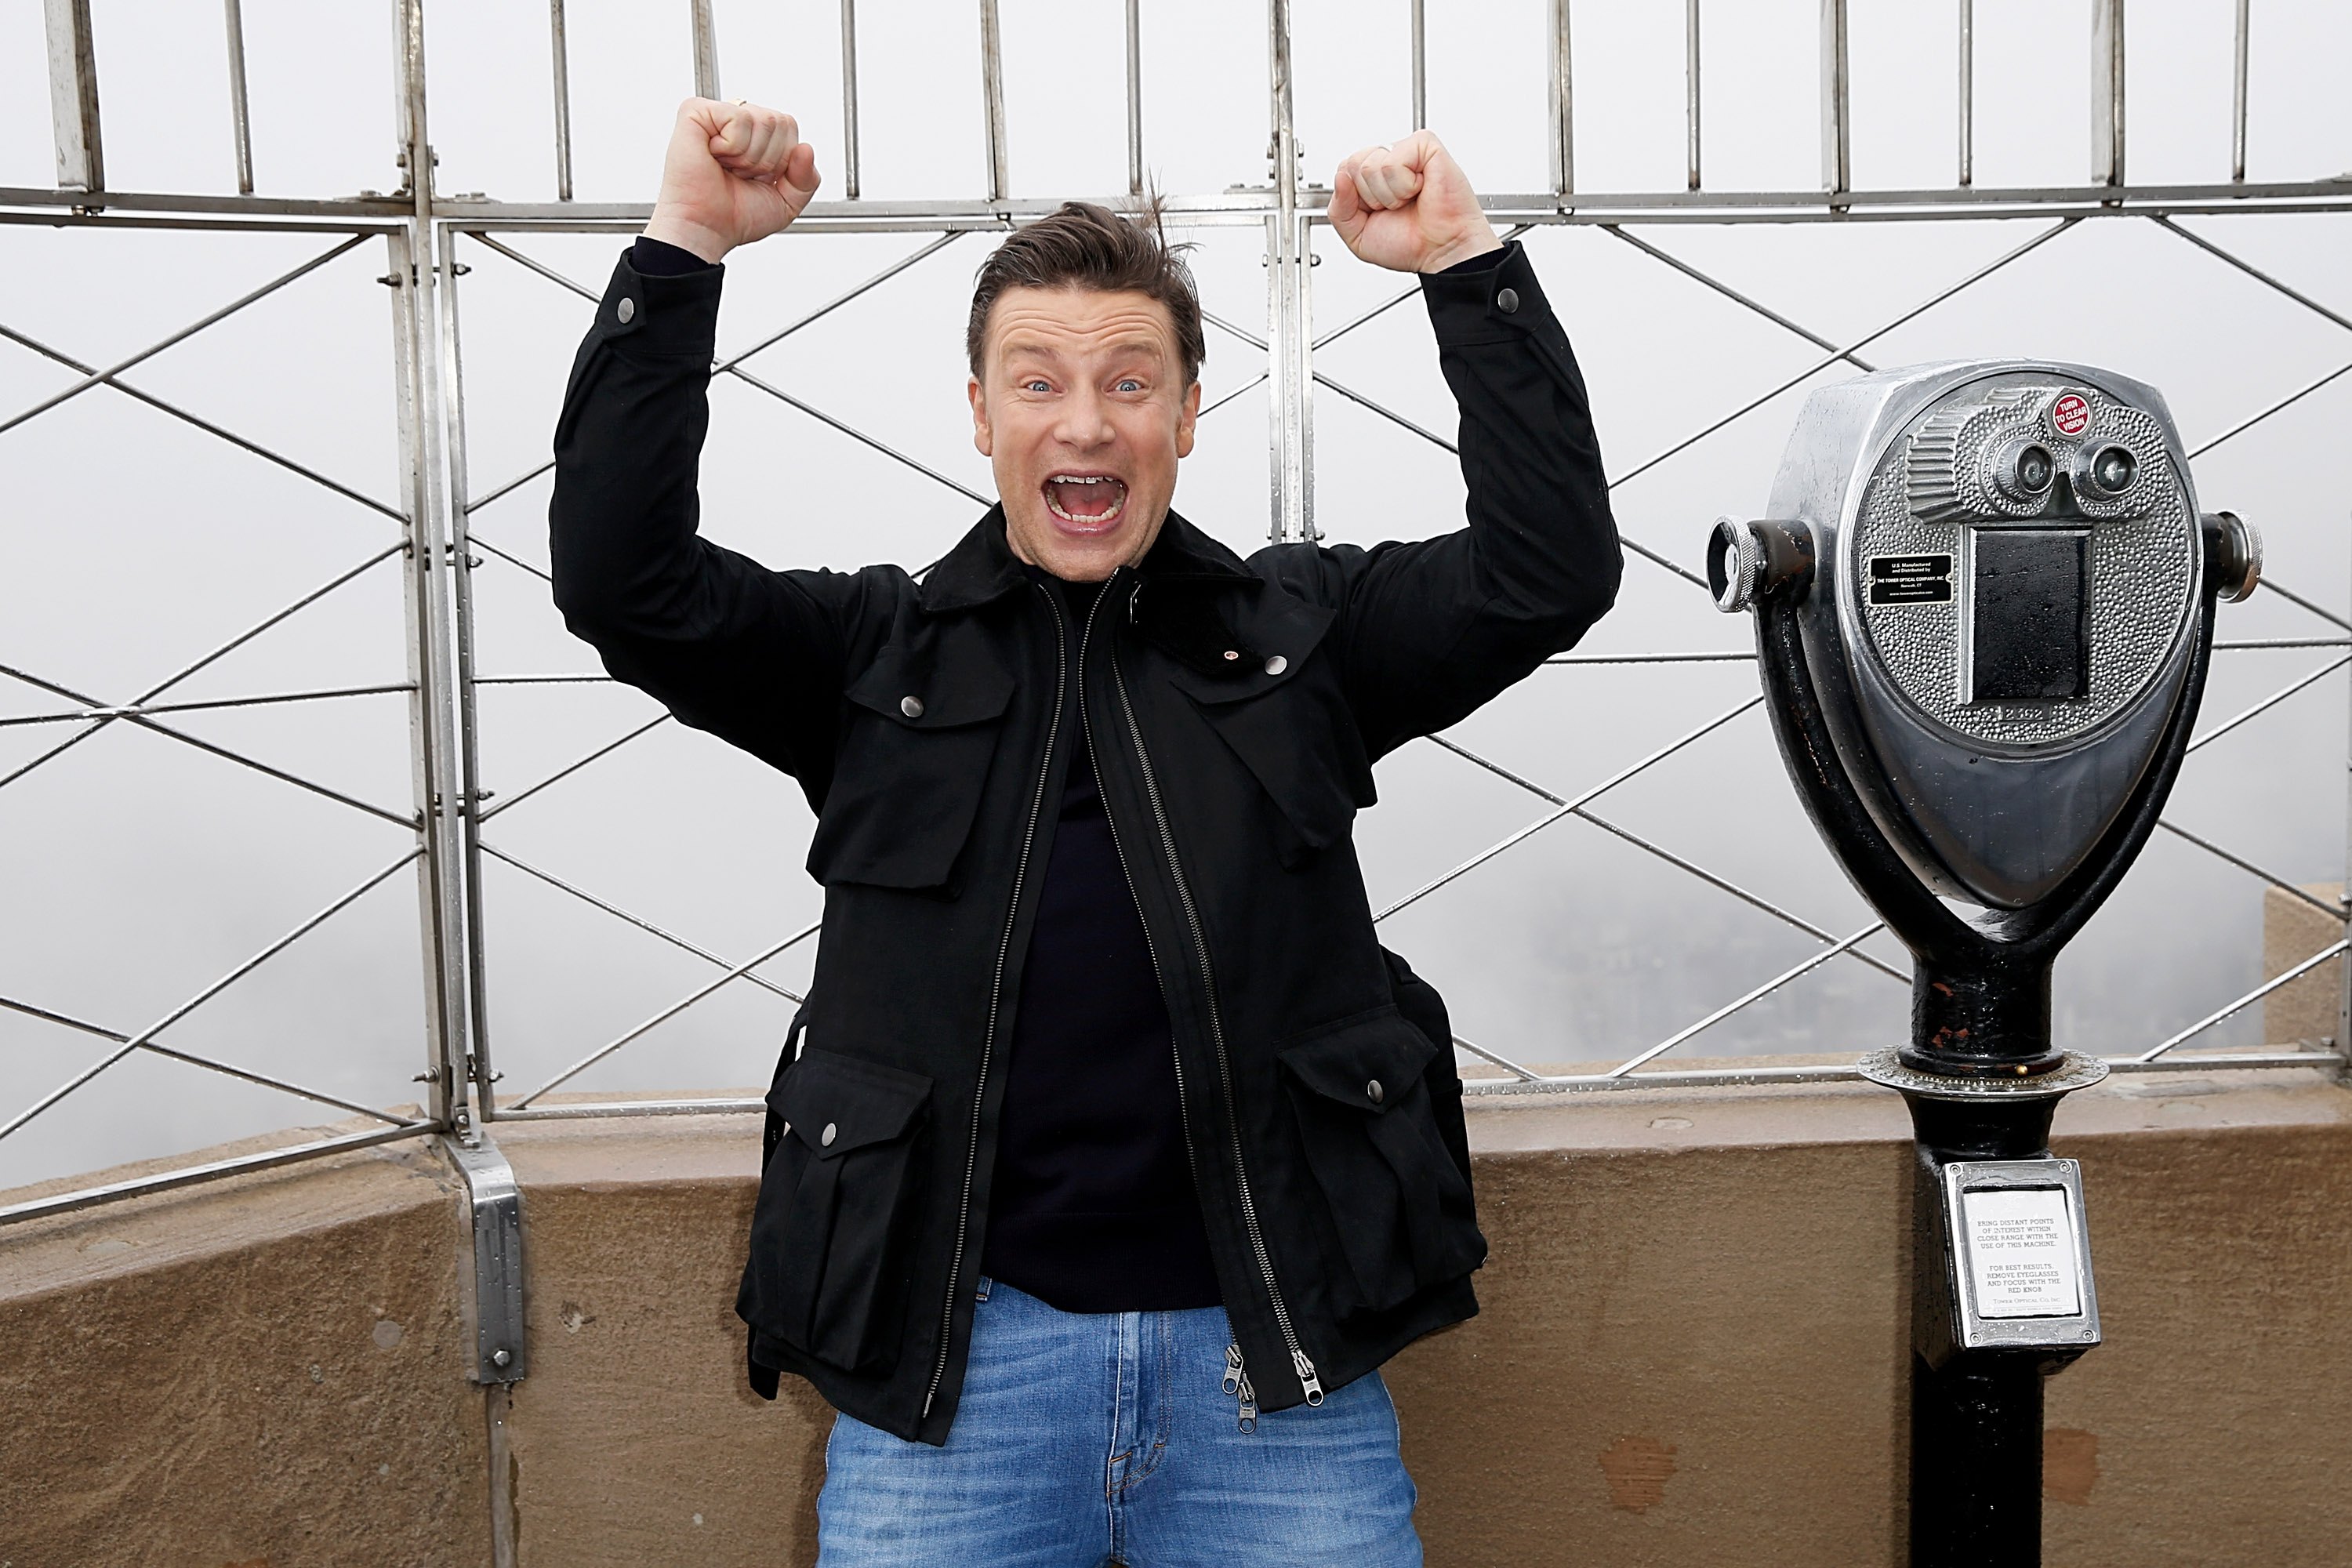 New Jamie Oliver Documentary Exploring His Life and Career Airs Tonight